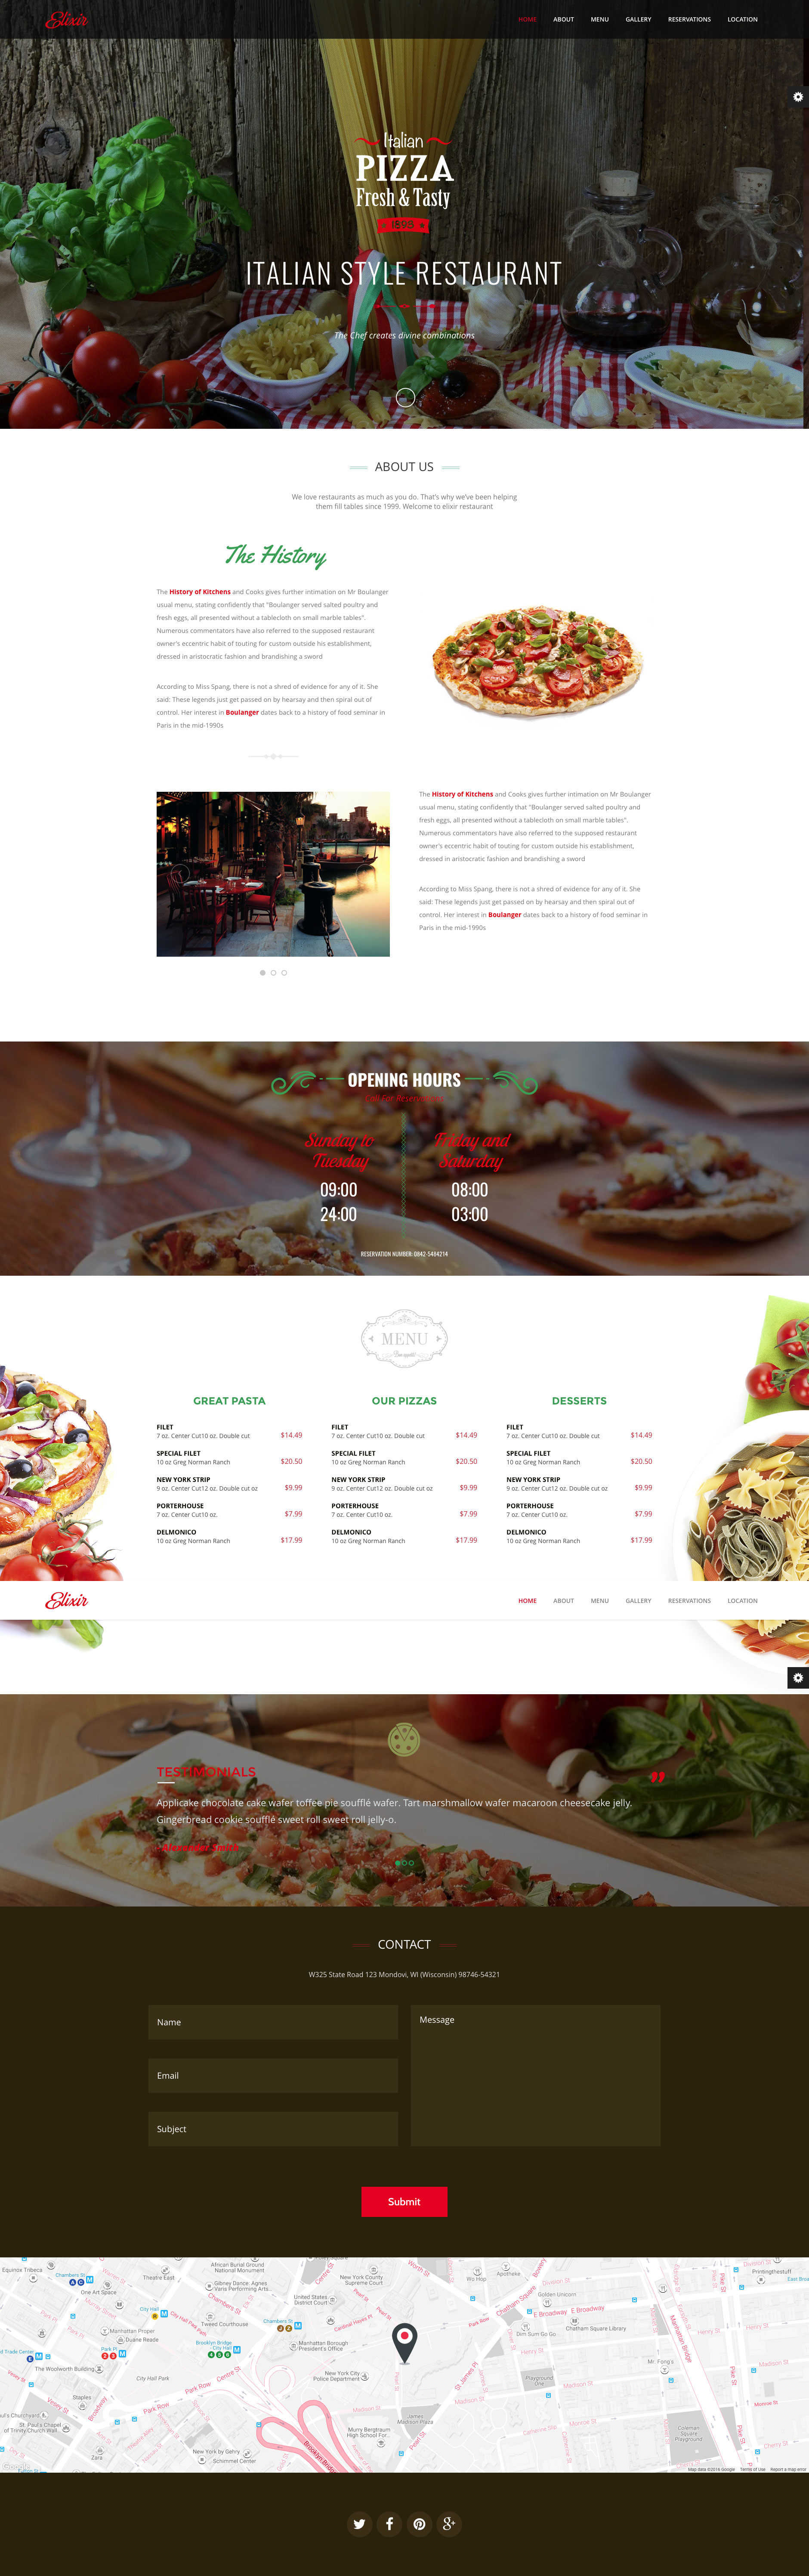 Elixir is a clean and professional responsive HTML5 restaurant website template for restaurant web sites. It comes with 4 different homepages: Luxury restaurant, American grill, Italian style and Asian food. Elixir restaurant template is fully responsive and based on the popular Bootstrap framework.